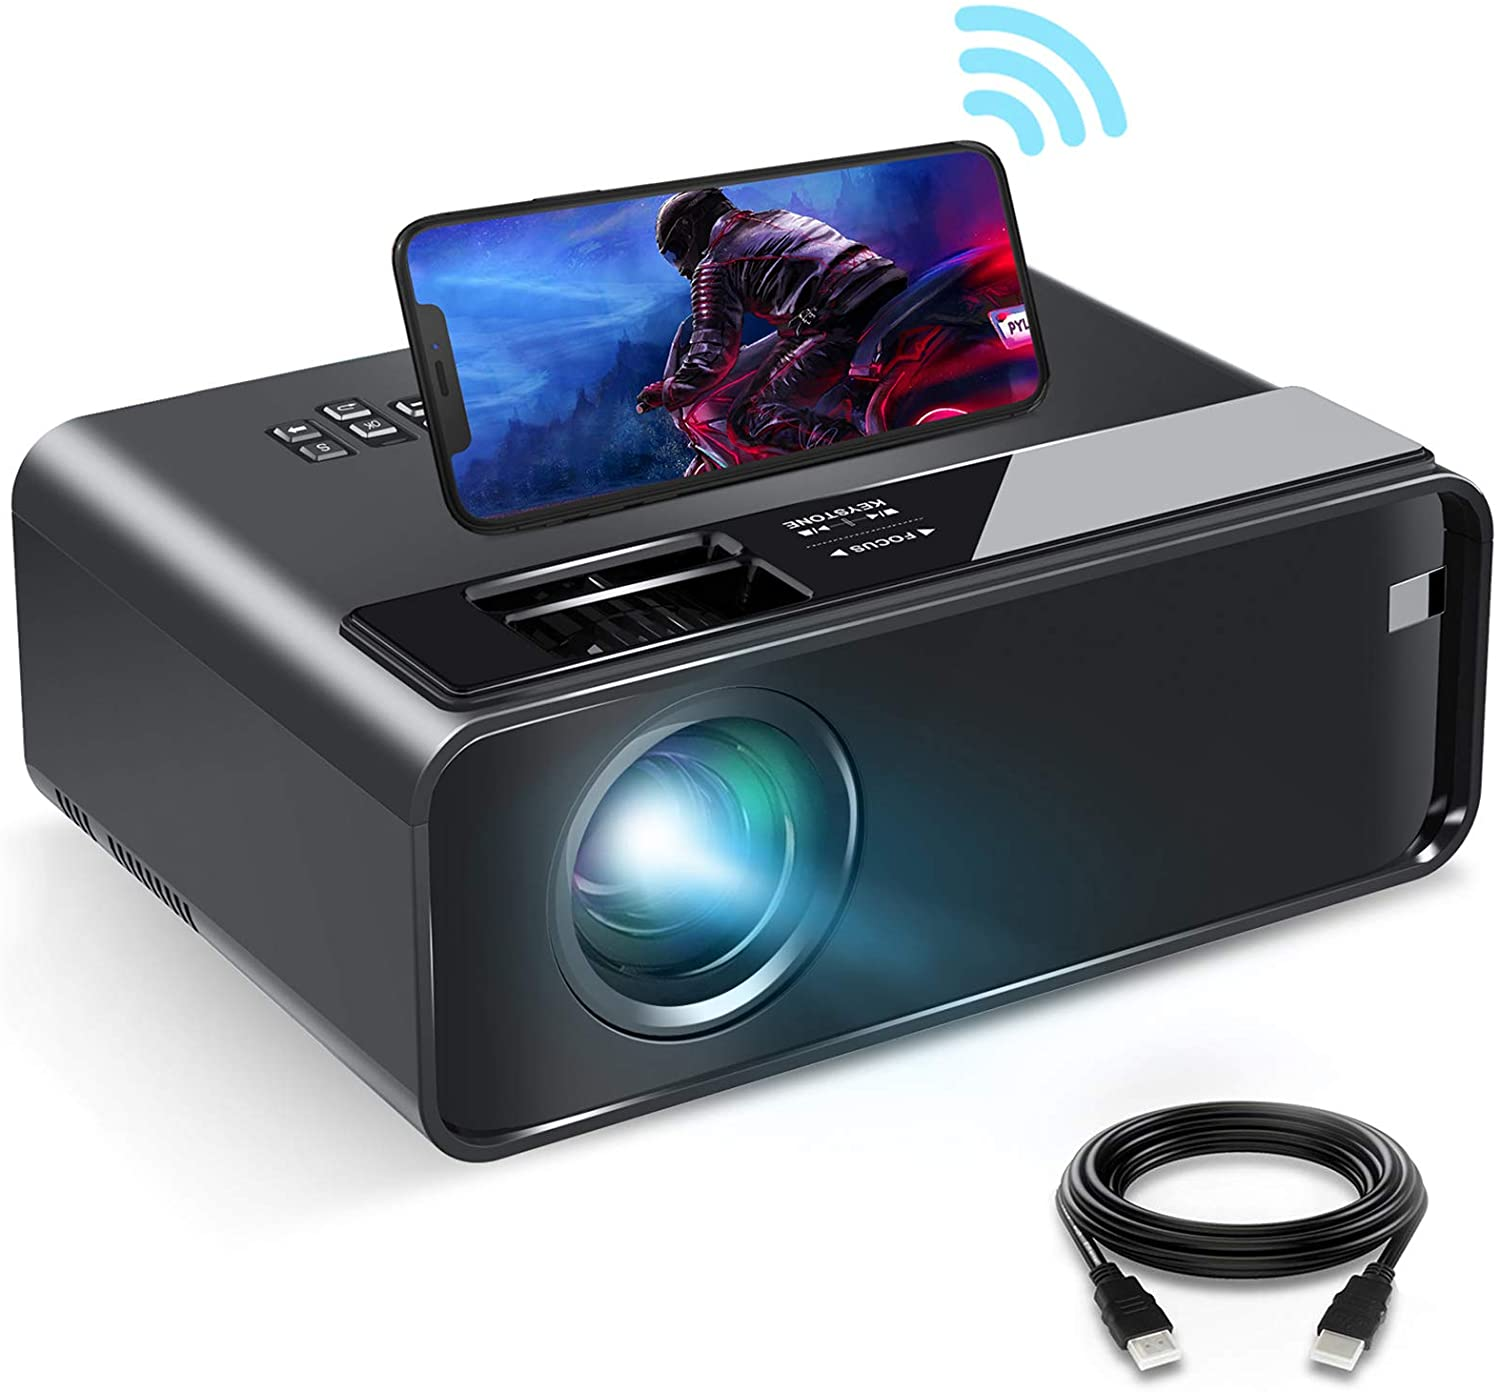 05. Outdoor Projector, 6000 Lux, Bomaker Portable WiFi Mini Projector